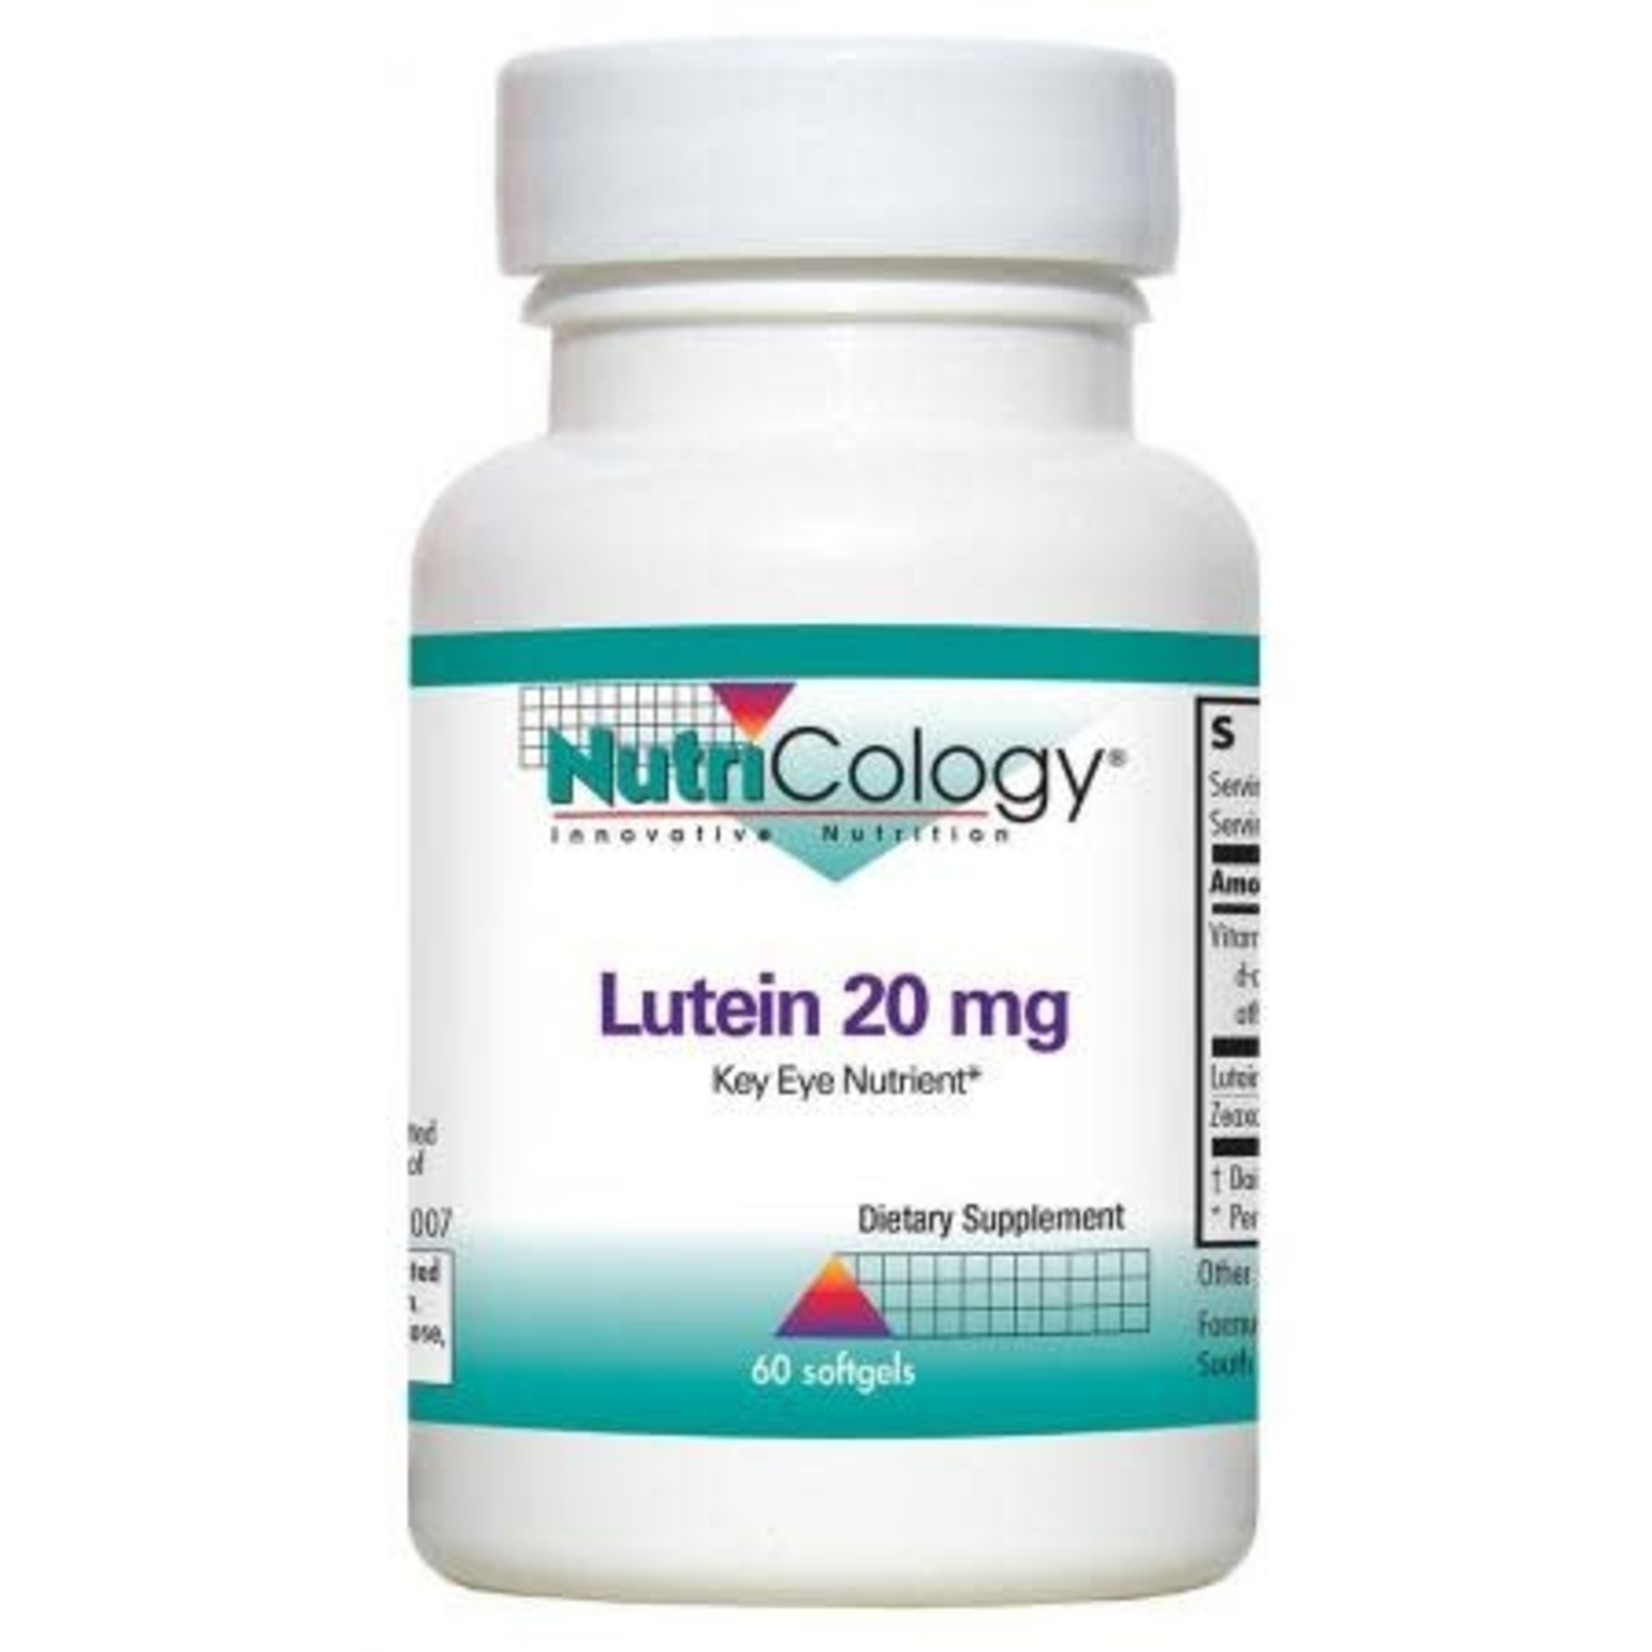 NutriCology NutriCology Lutein 20mg 60 softgels